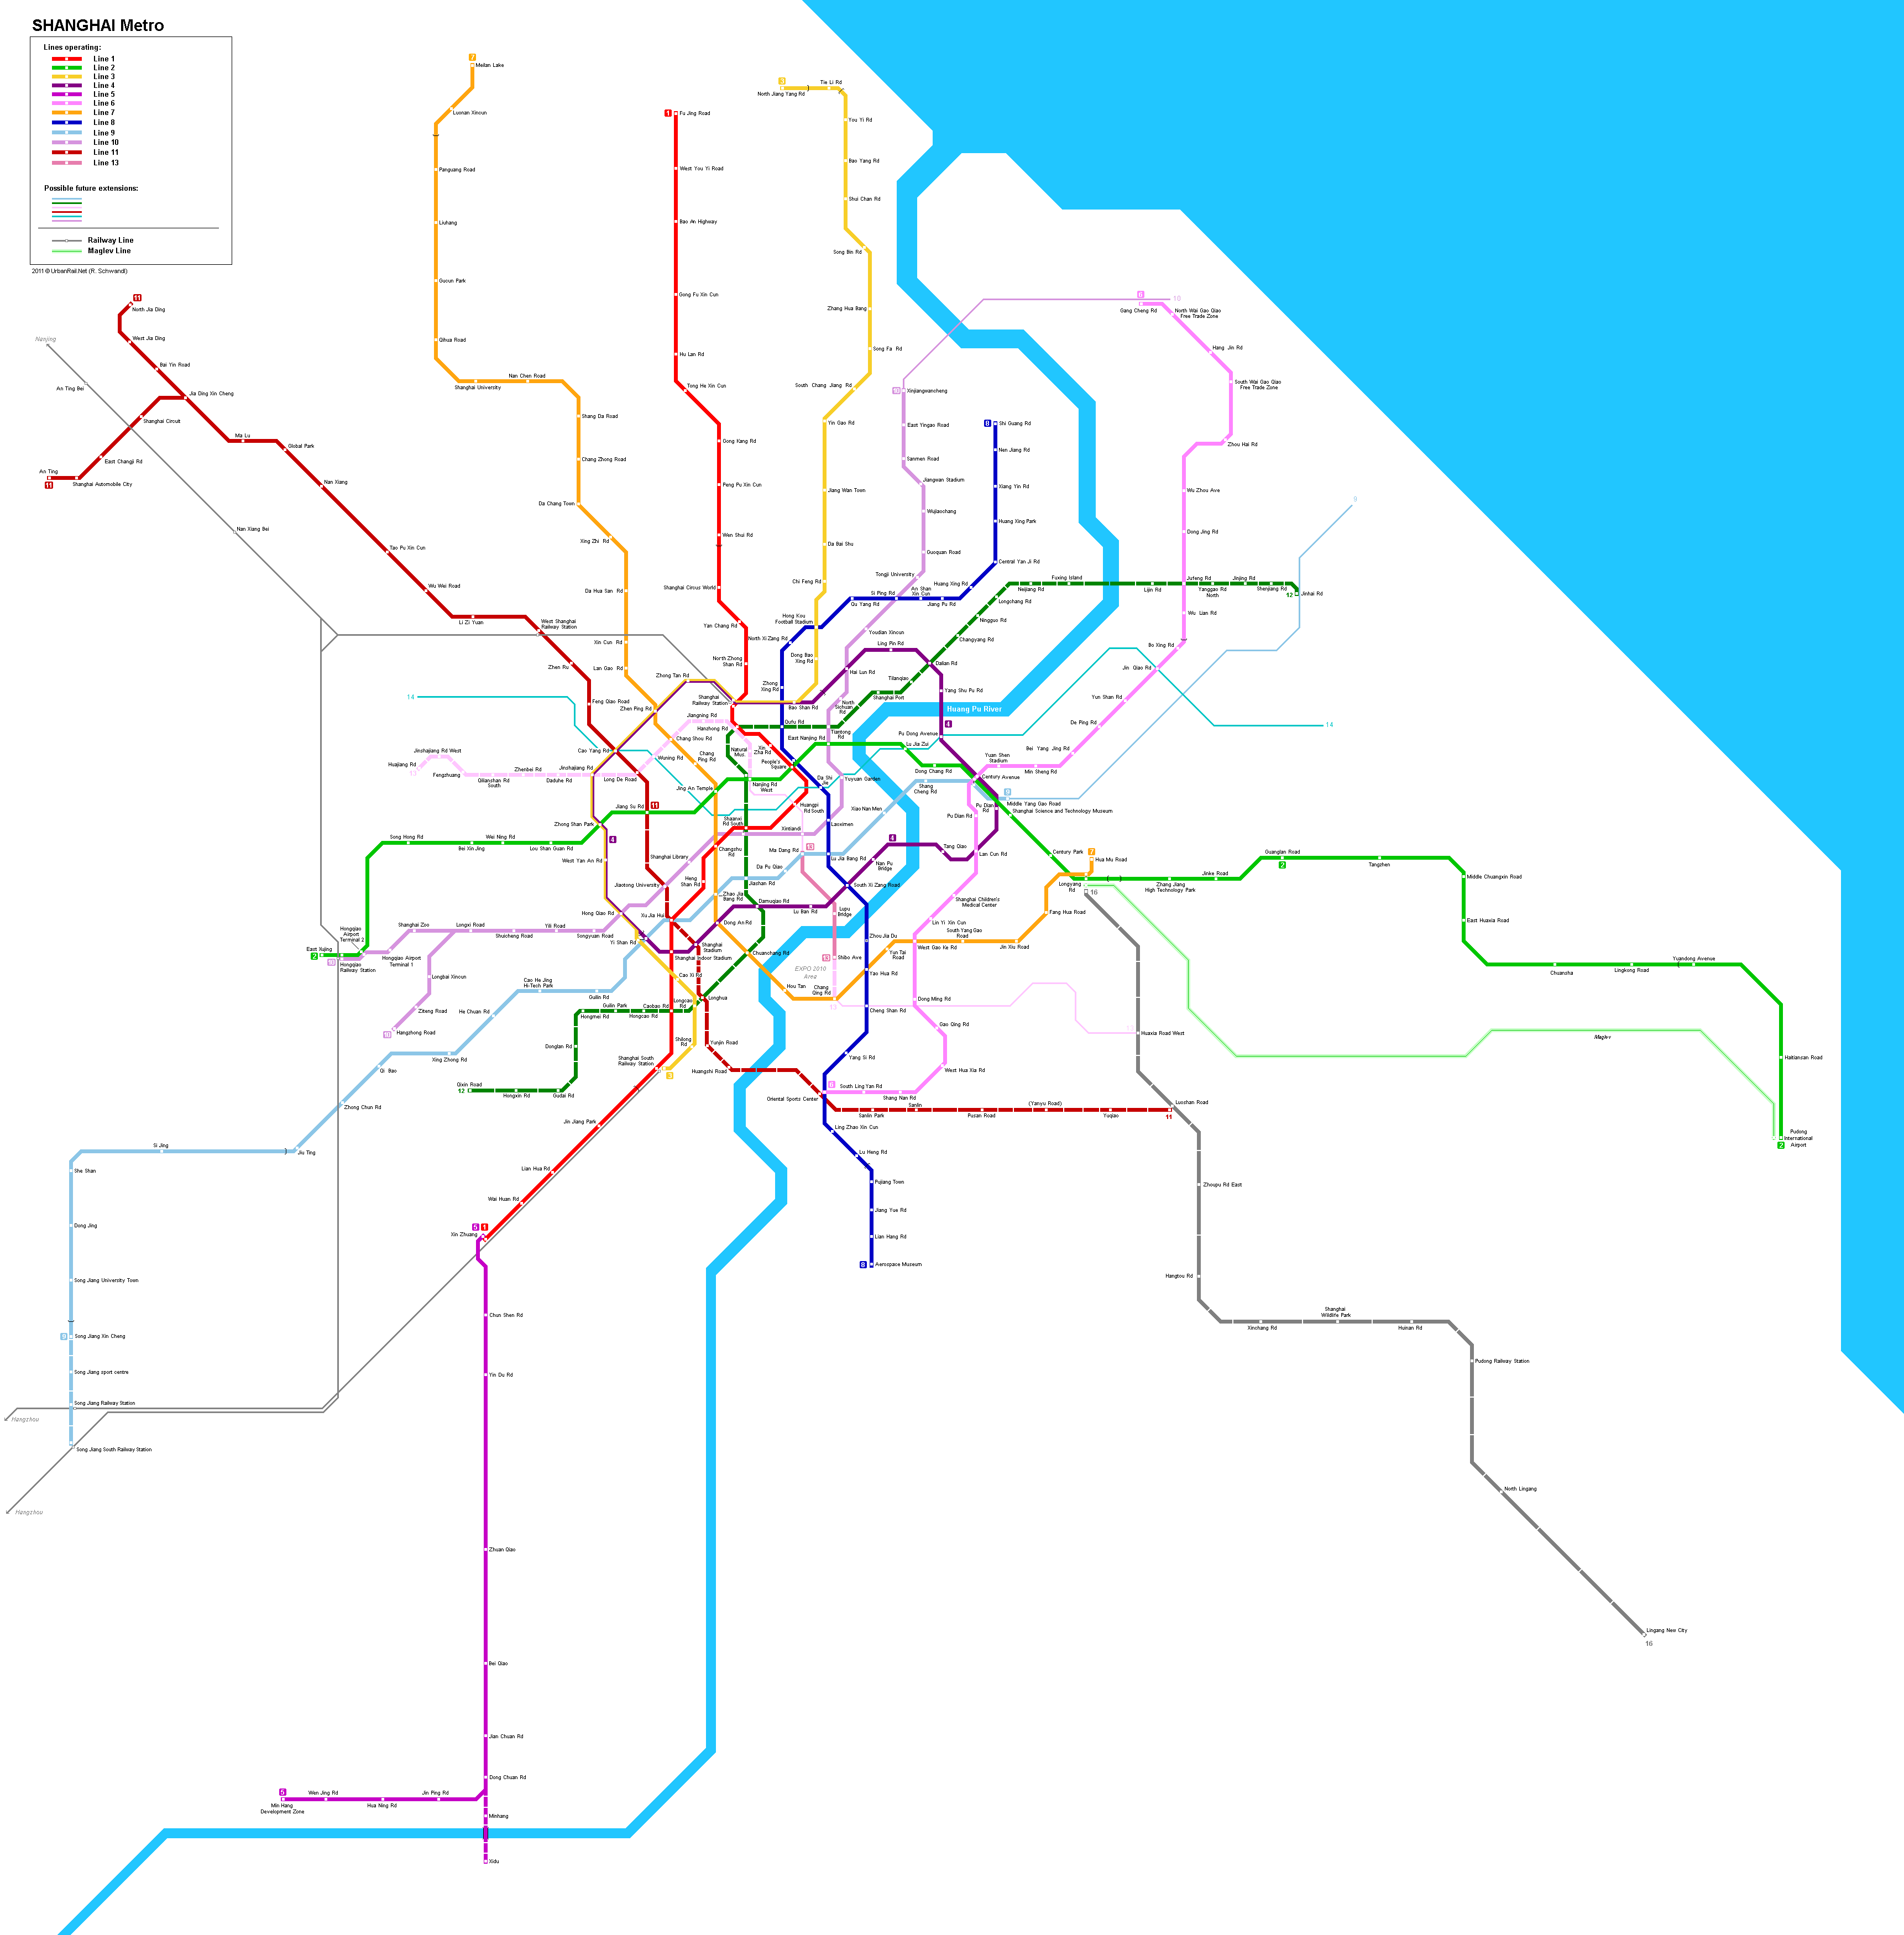 Subway Map Shanghai Tourist.Shanghai Subway Station Guide And Travel Tips